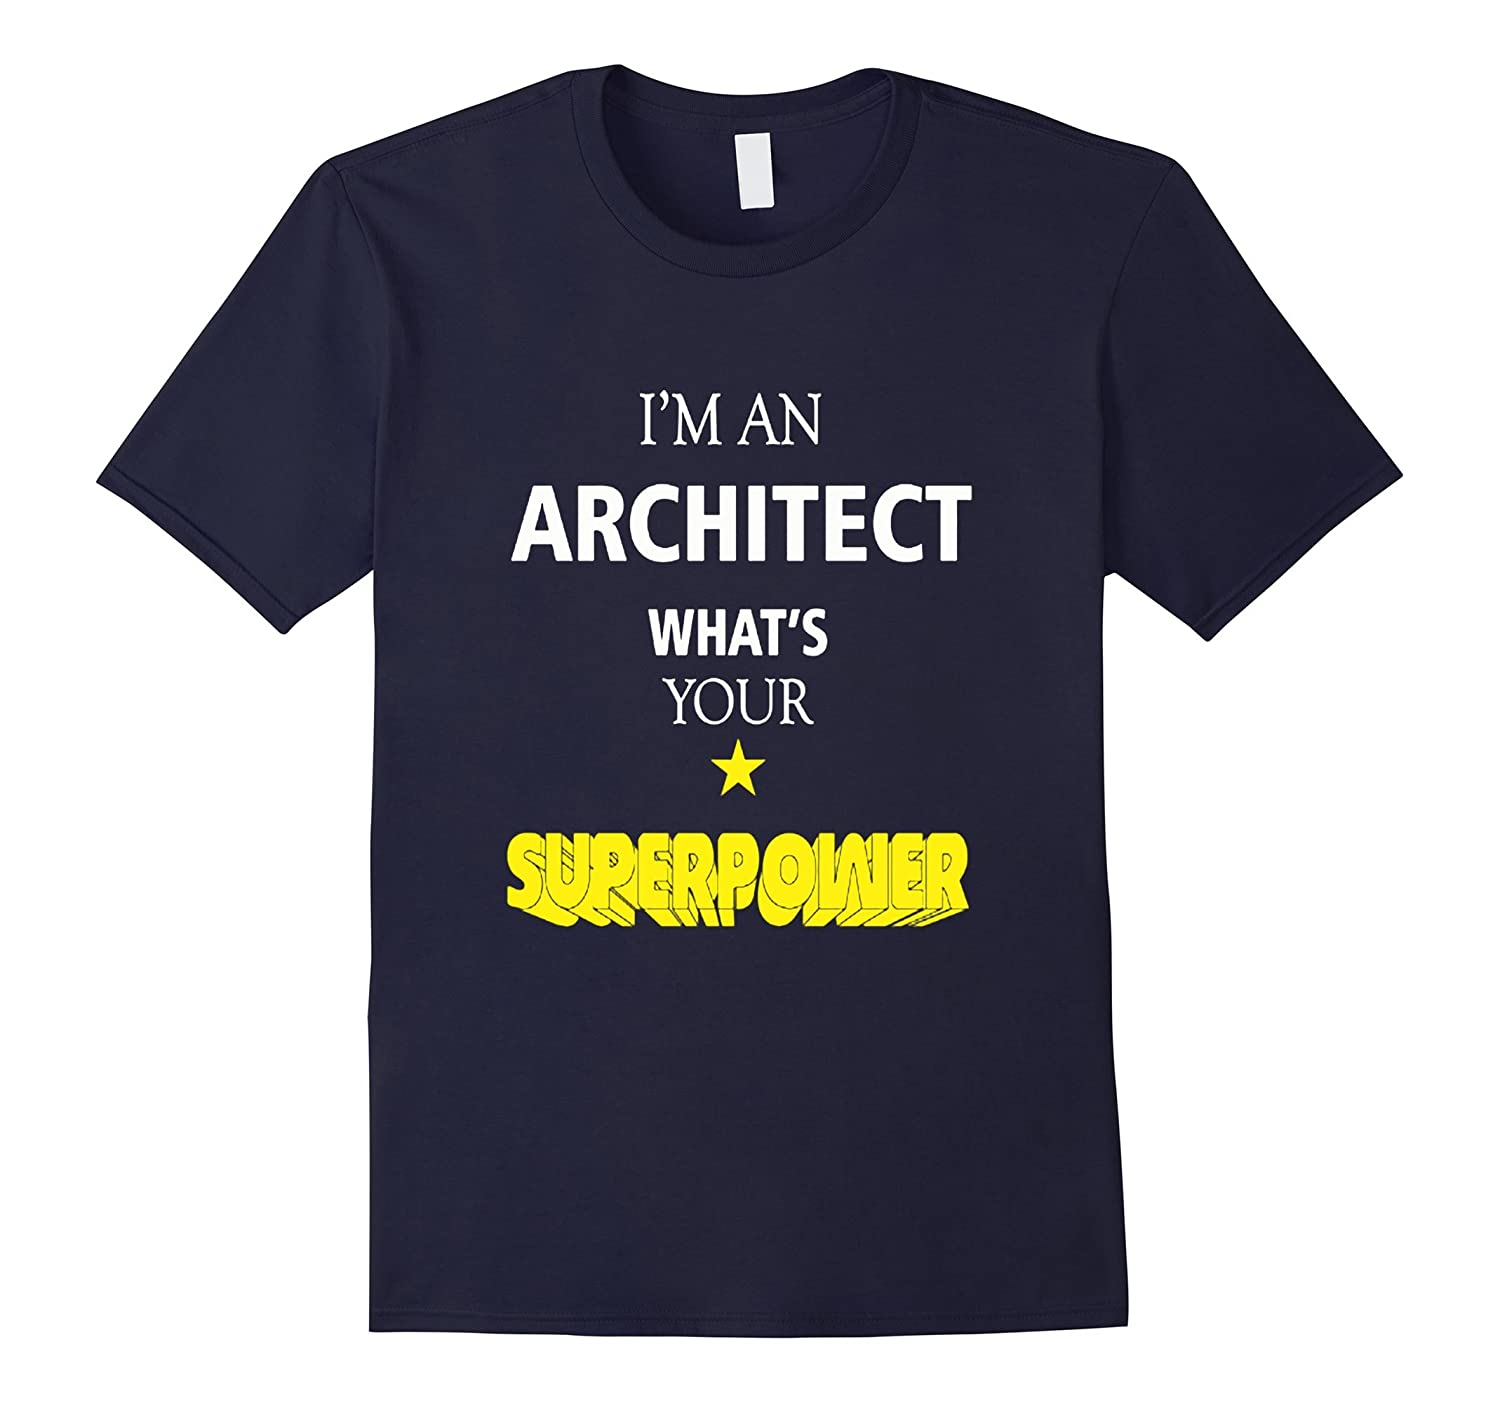 Architect - Im an Architect whats your superpower T-shirt-TD